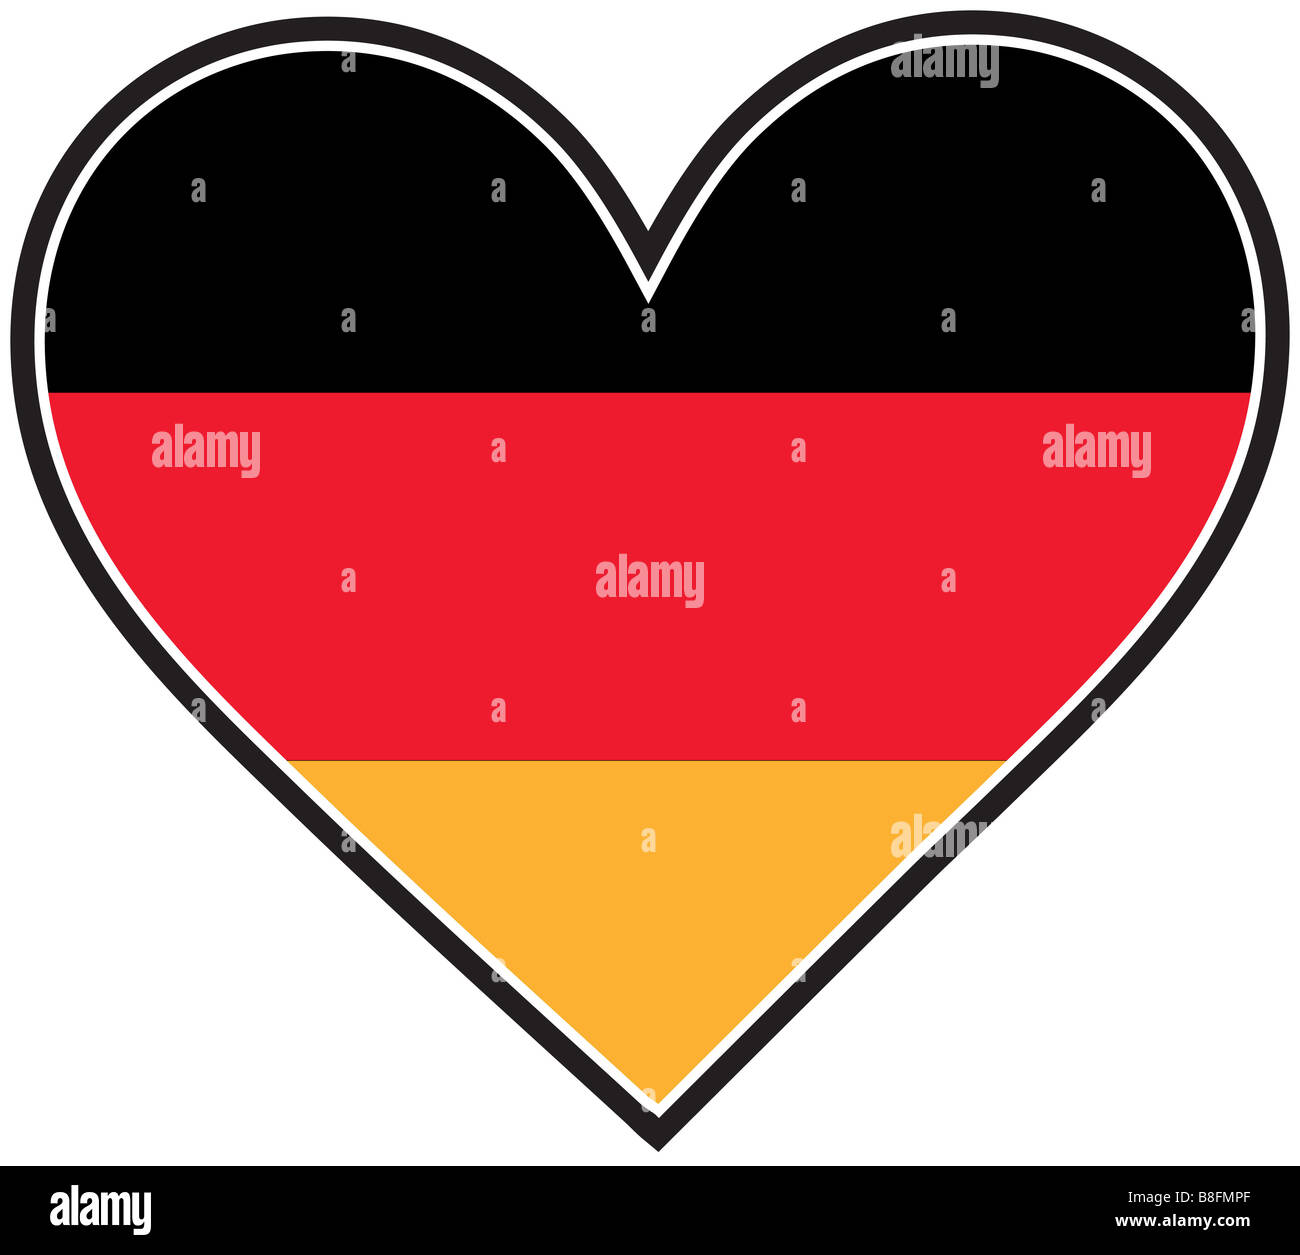 A German flag shaped like a heart - Stock Image